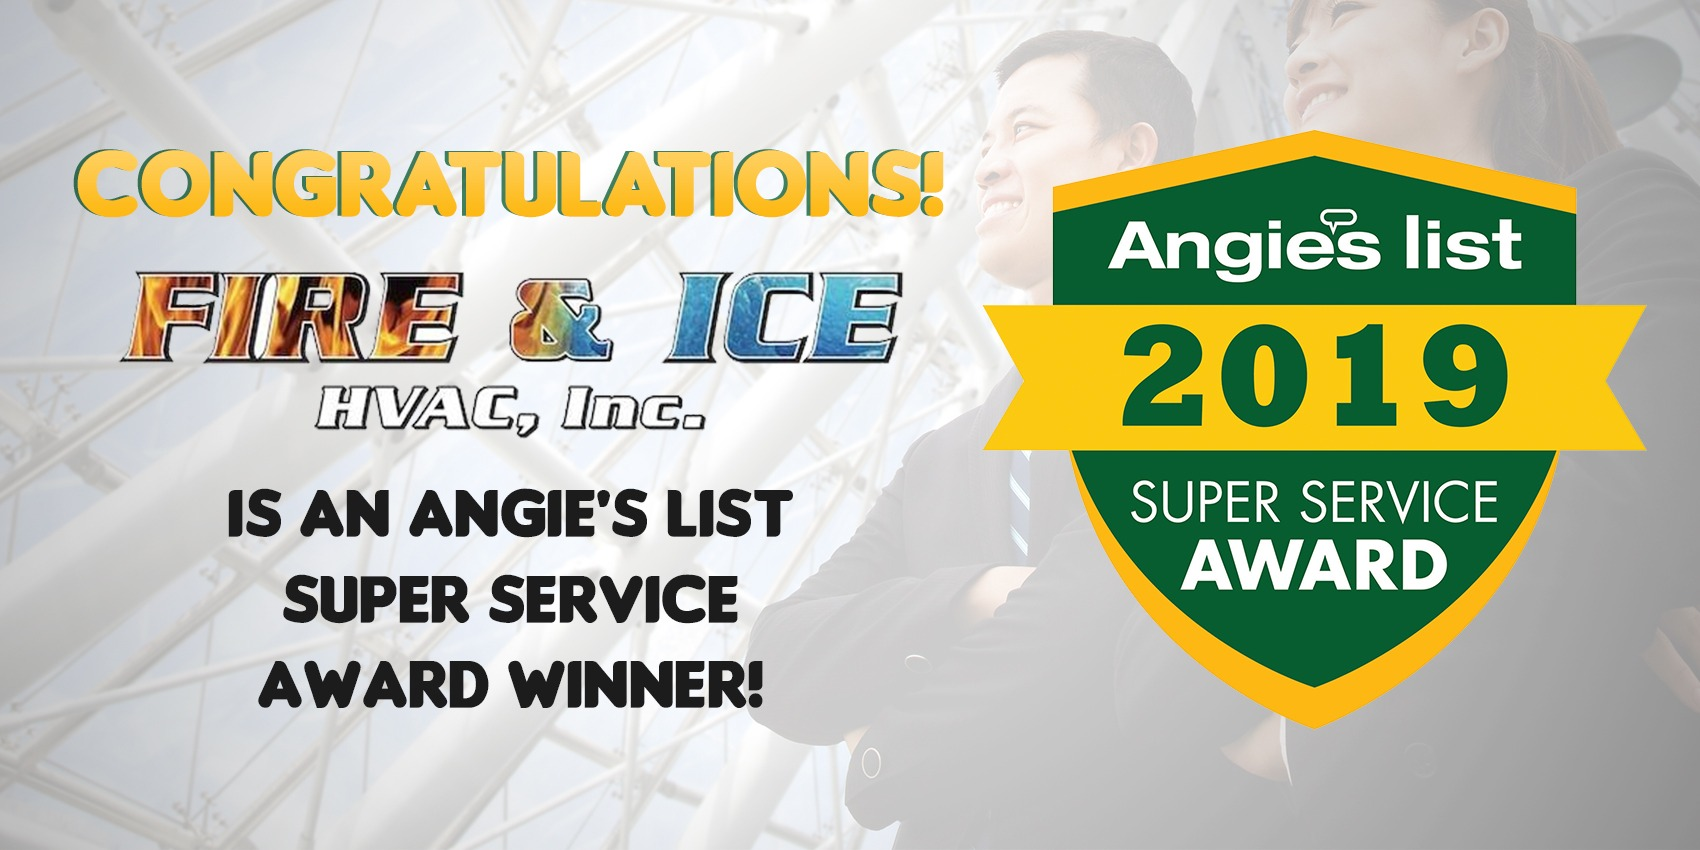 Fire & Ice HVAC, Inc. Earns 2019 Angie's List Super Service Award